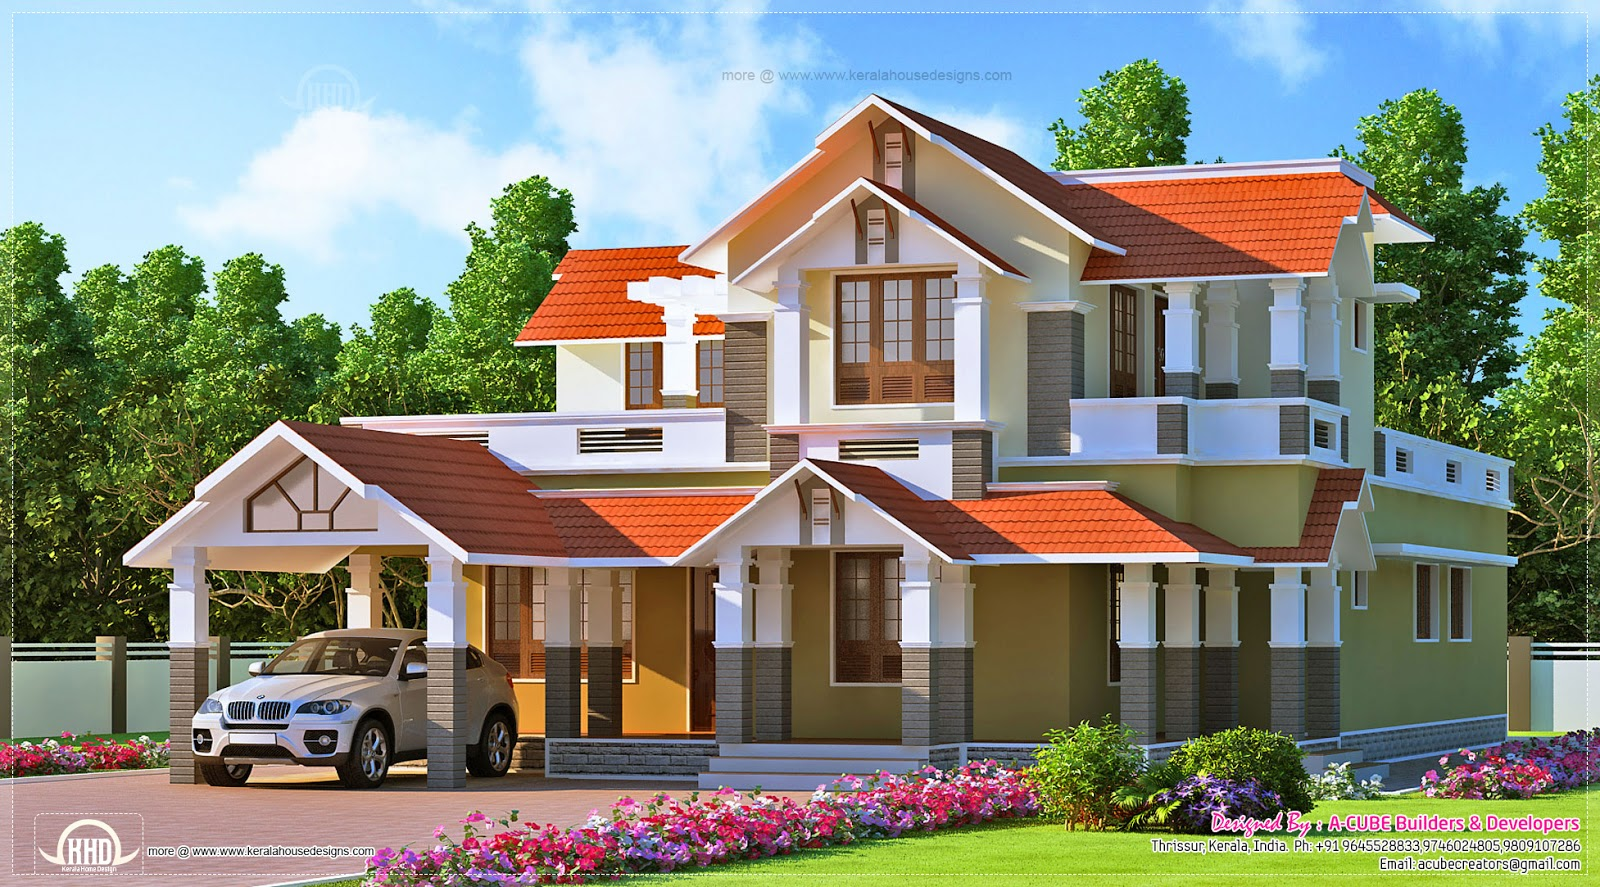 Kerala style dream home design in 2900 house for Home design 4u kerala